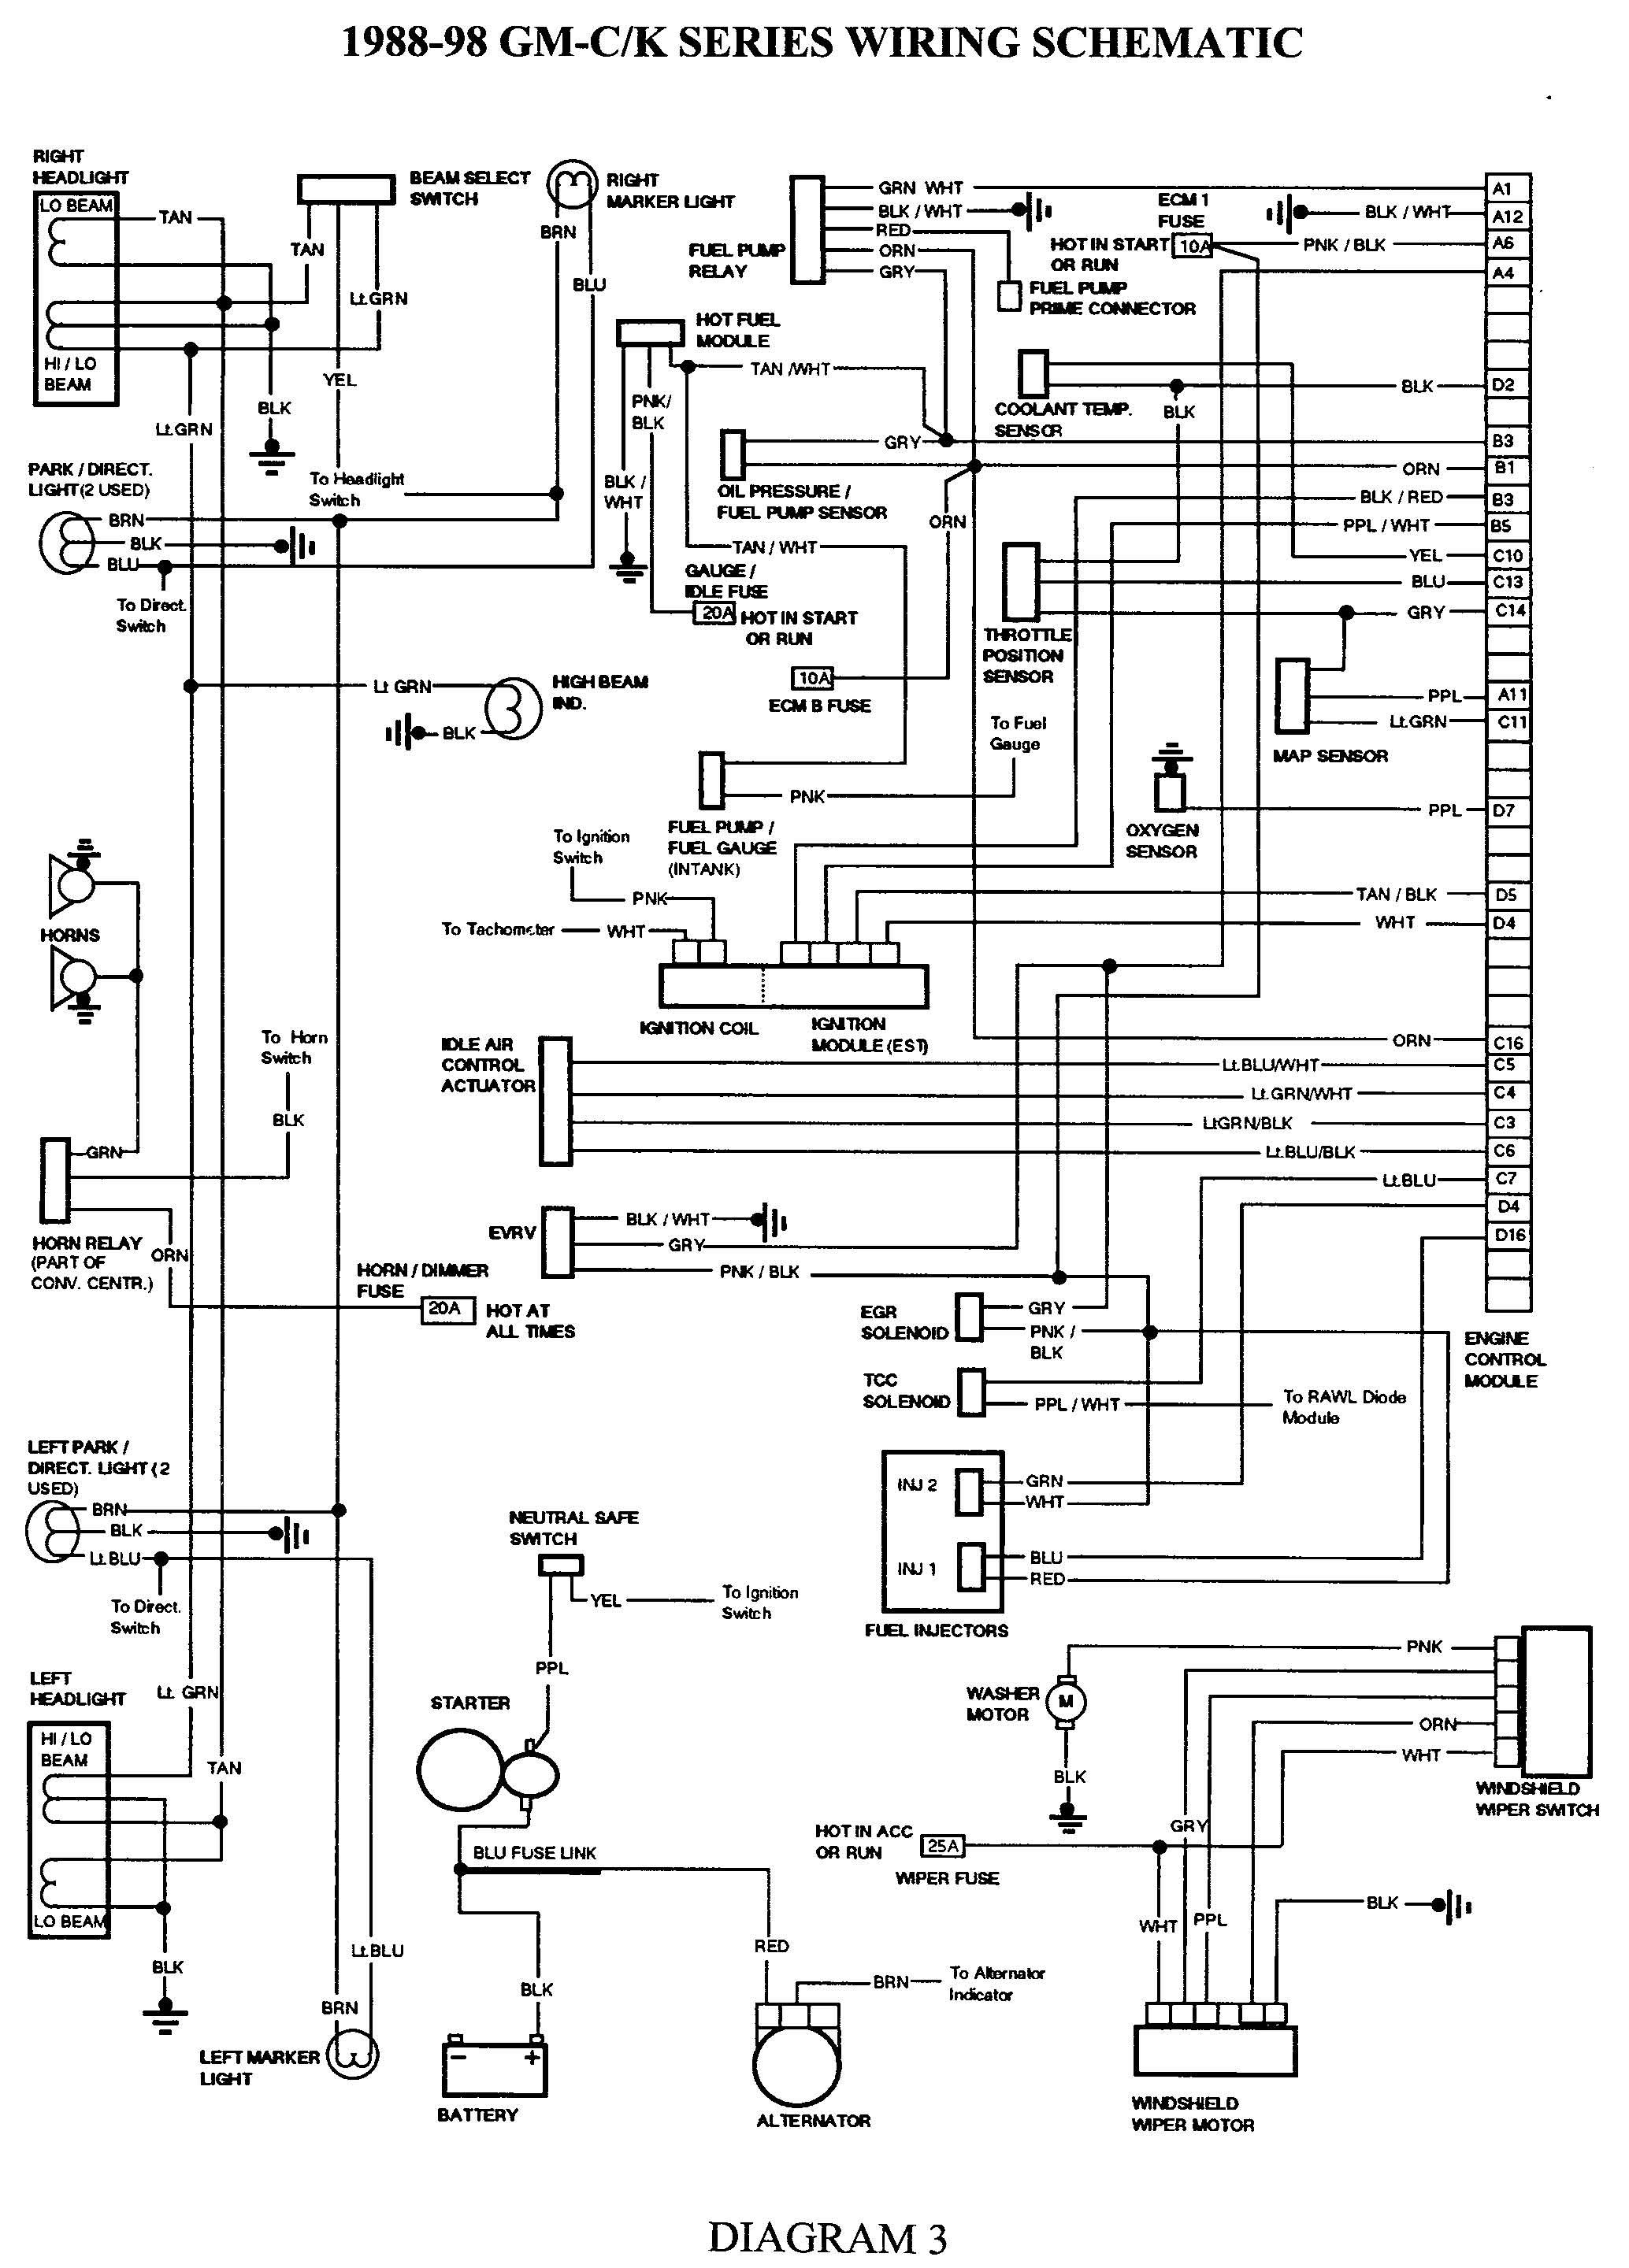 vw diesel ignition wiring diagram 89 15 3 tridonicsignage de \u2022vw diesel  ignition wiring diagram